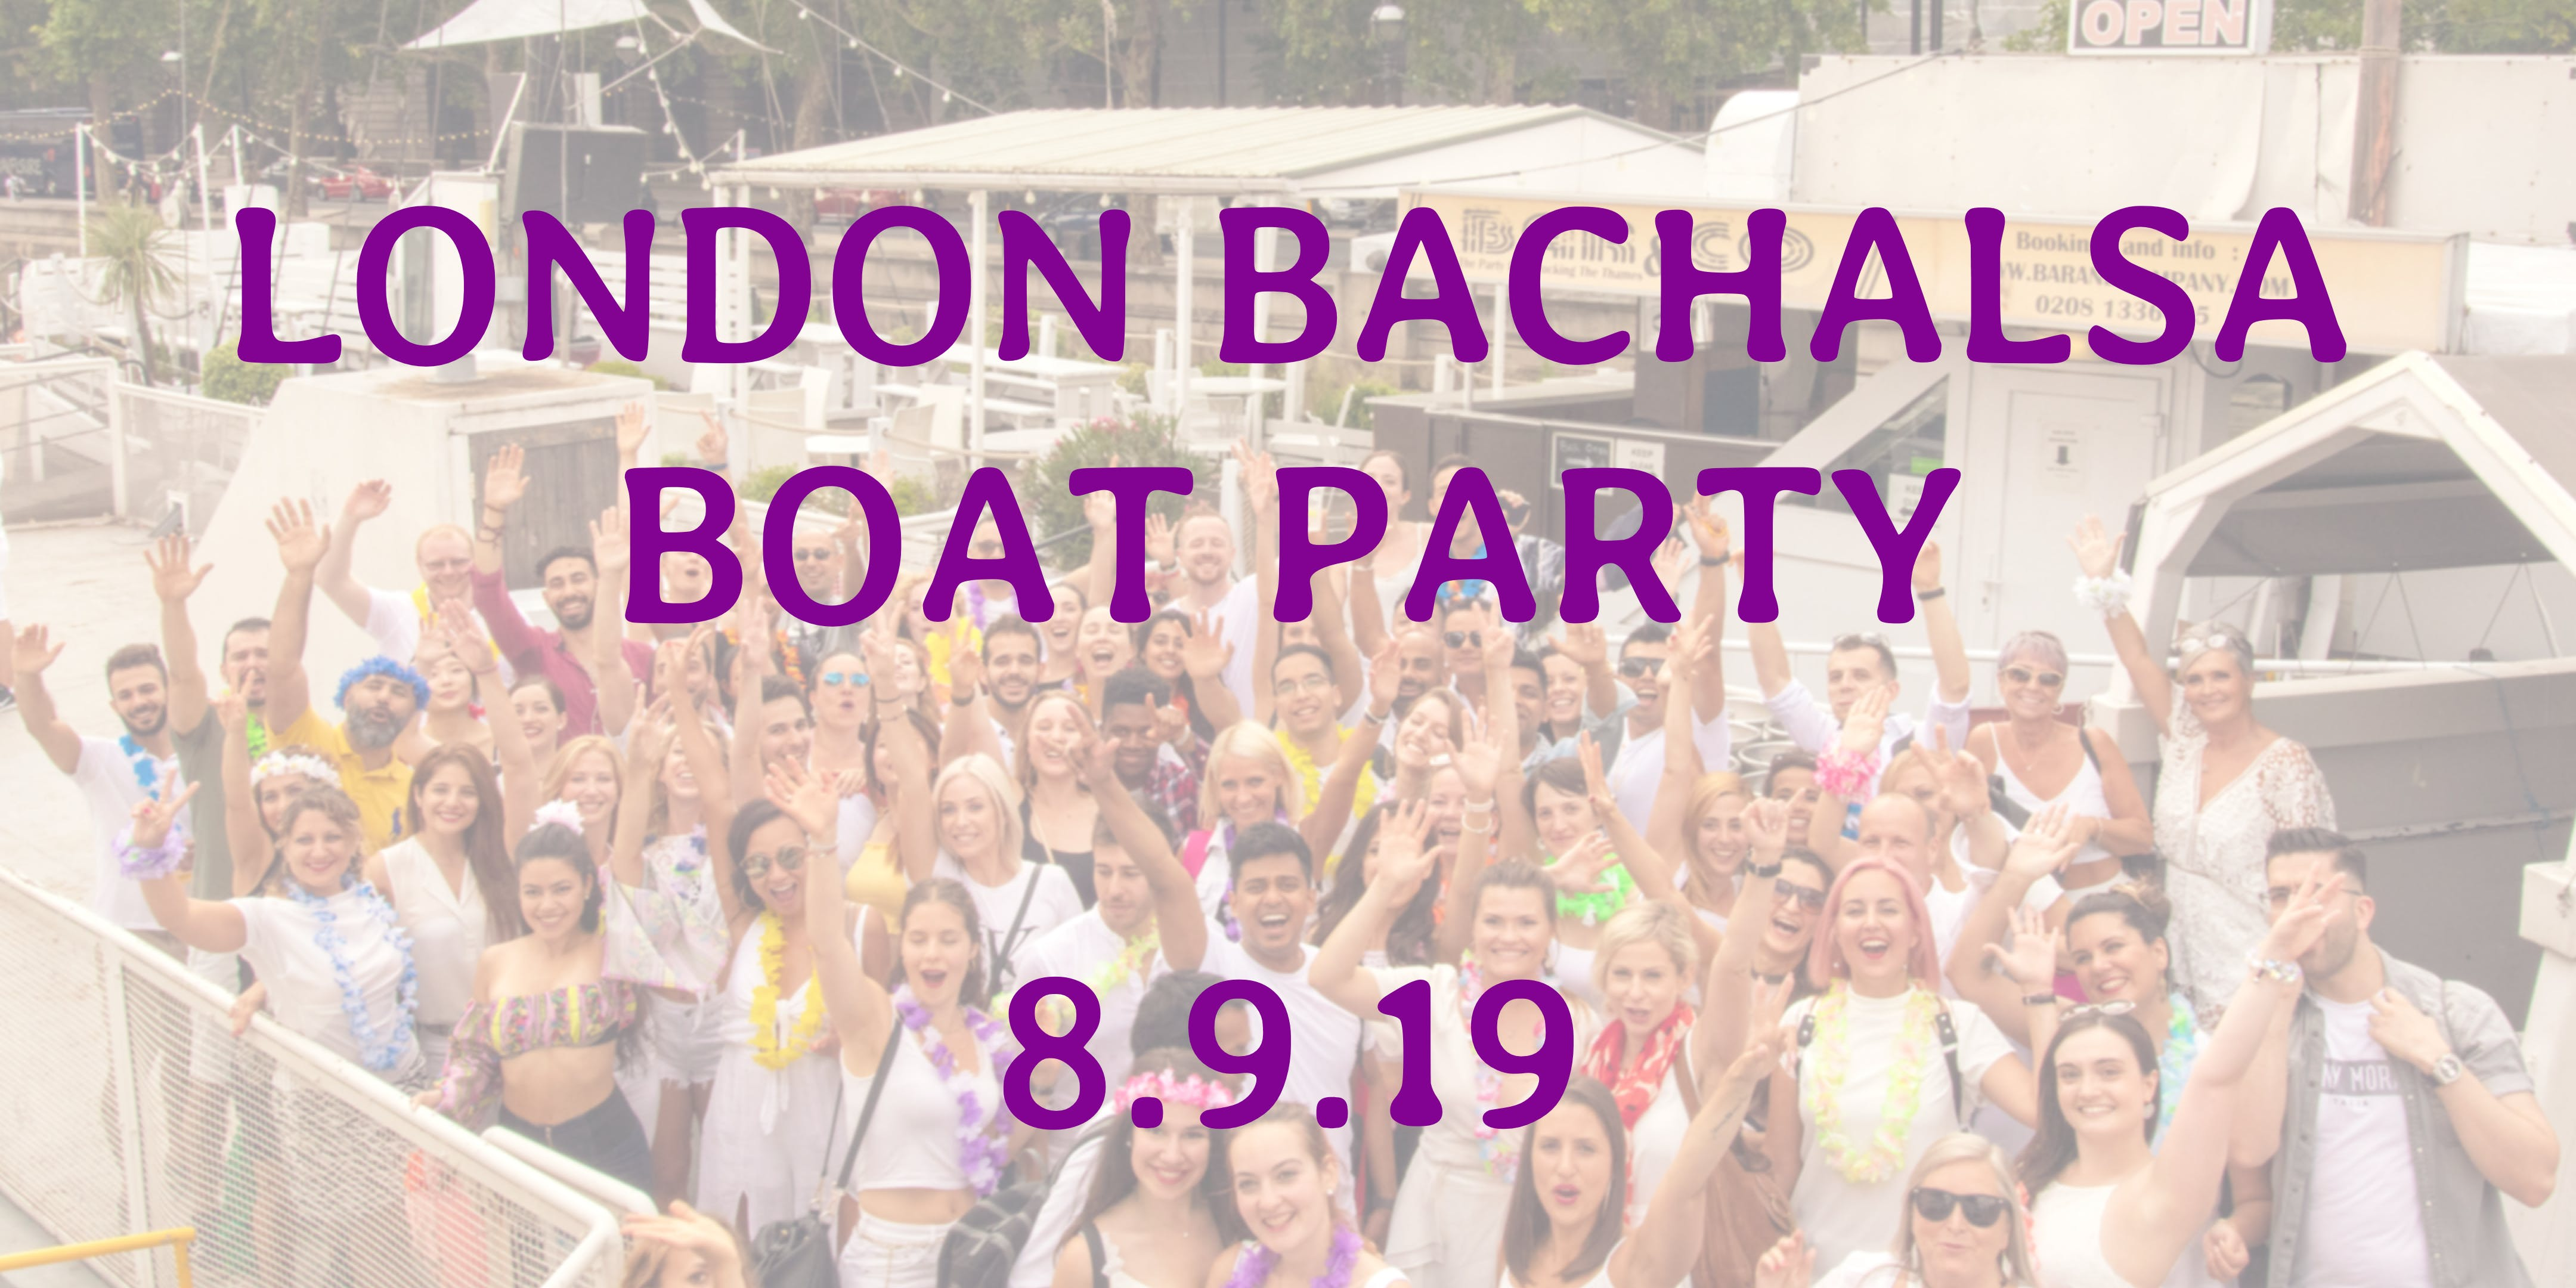 London Bachalsa Boat Party